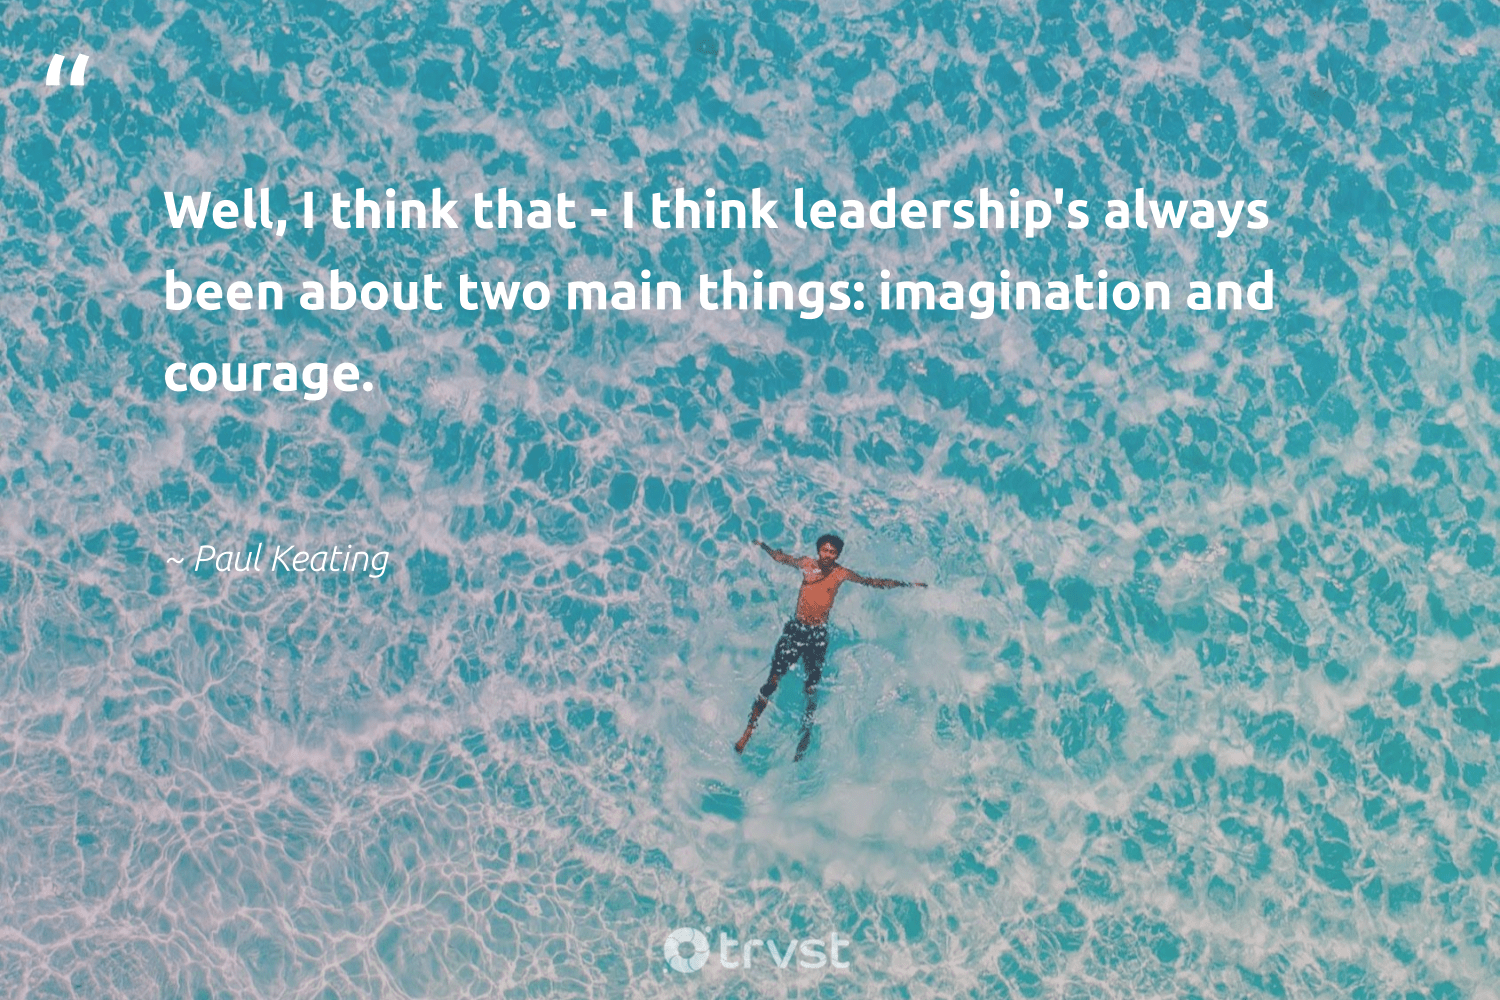 """Well, I think that - I think leadership's always been about two main things: imagination and courage.""  - Paul Keating #trvst #quotes #softskills #gogreen #begreat #socialchange #futureofwork #dotherightthing #nevergiveup #beinspired #dogood #ecoconscious"